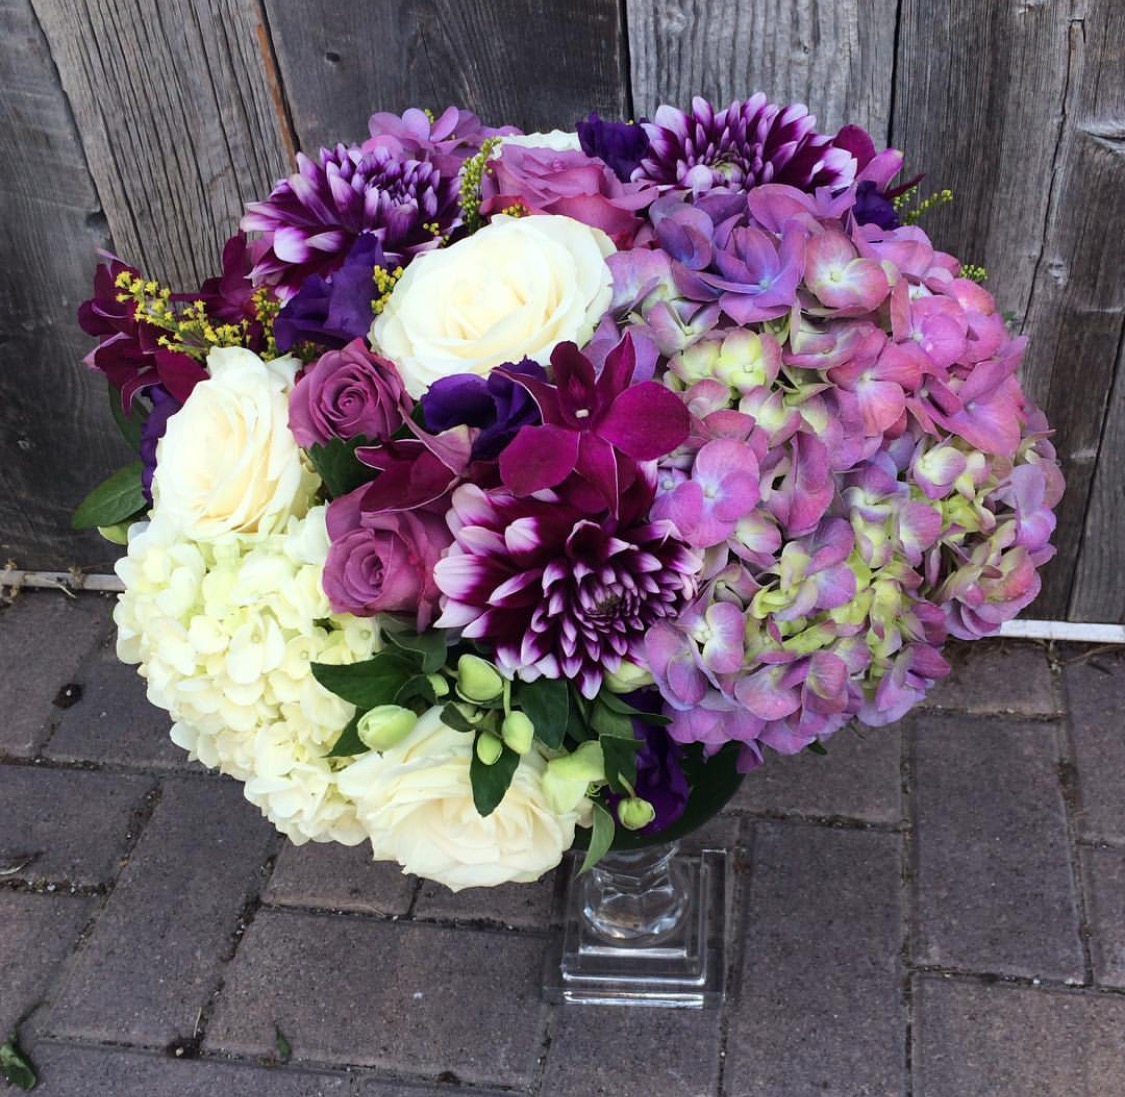 28. Designer Hydrangea and Dahlia Arrangement